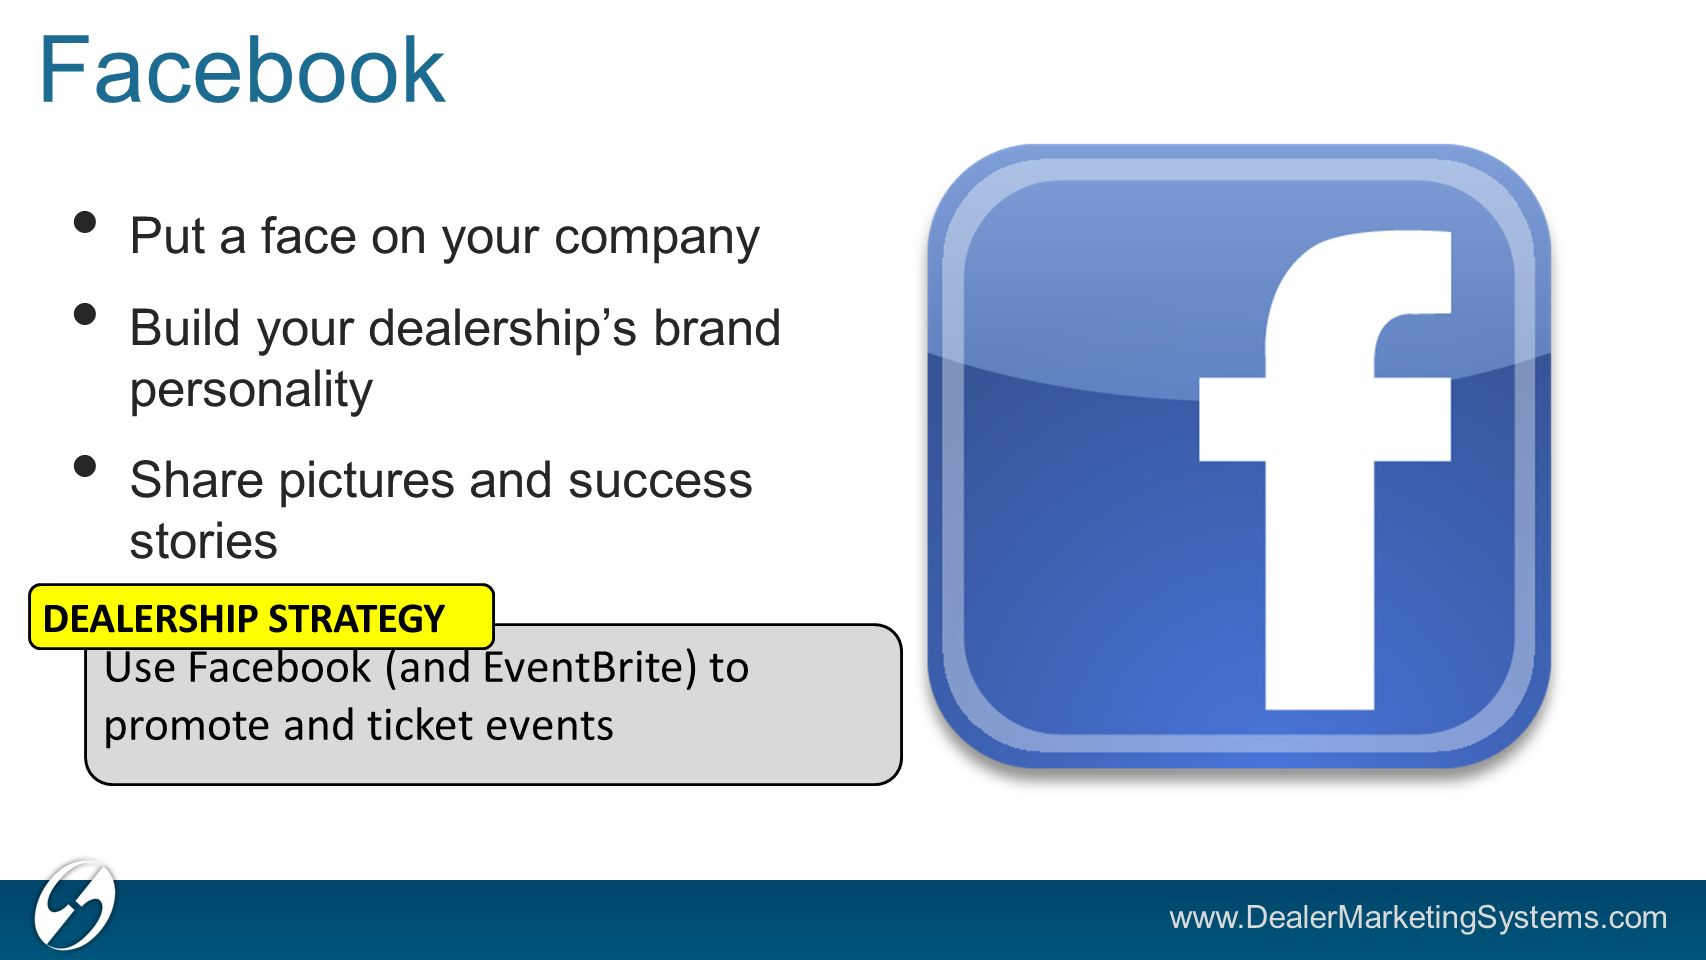 Facebook Put a face on your company Build your dealership's brand personality Share pictures and success stories Use Facebook (and EventBrite) to promote and ticket events DEALERSHIP STRATEGY